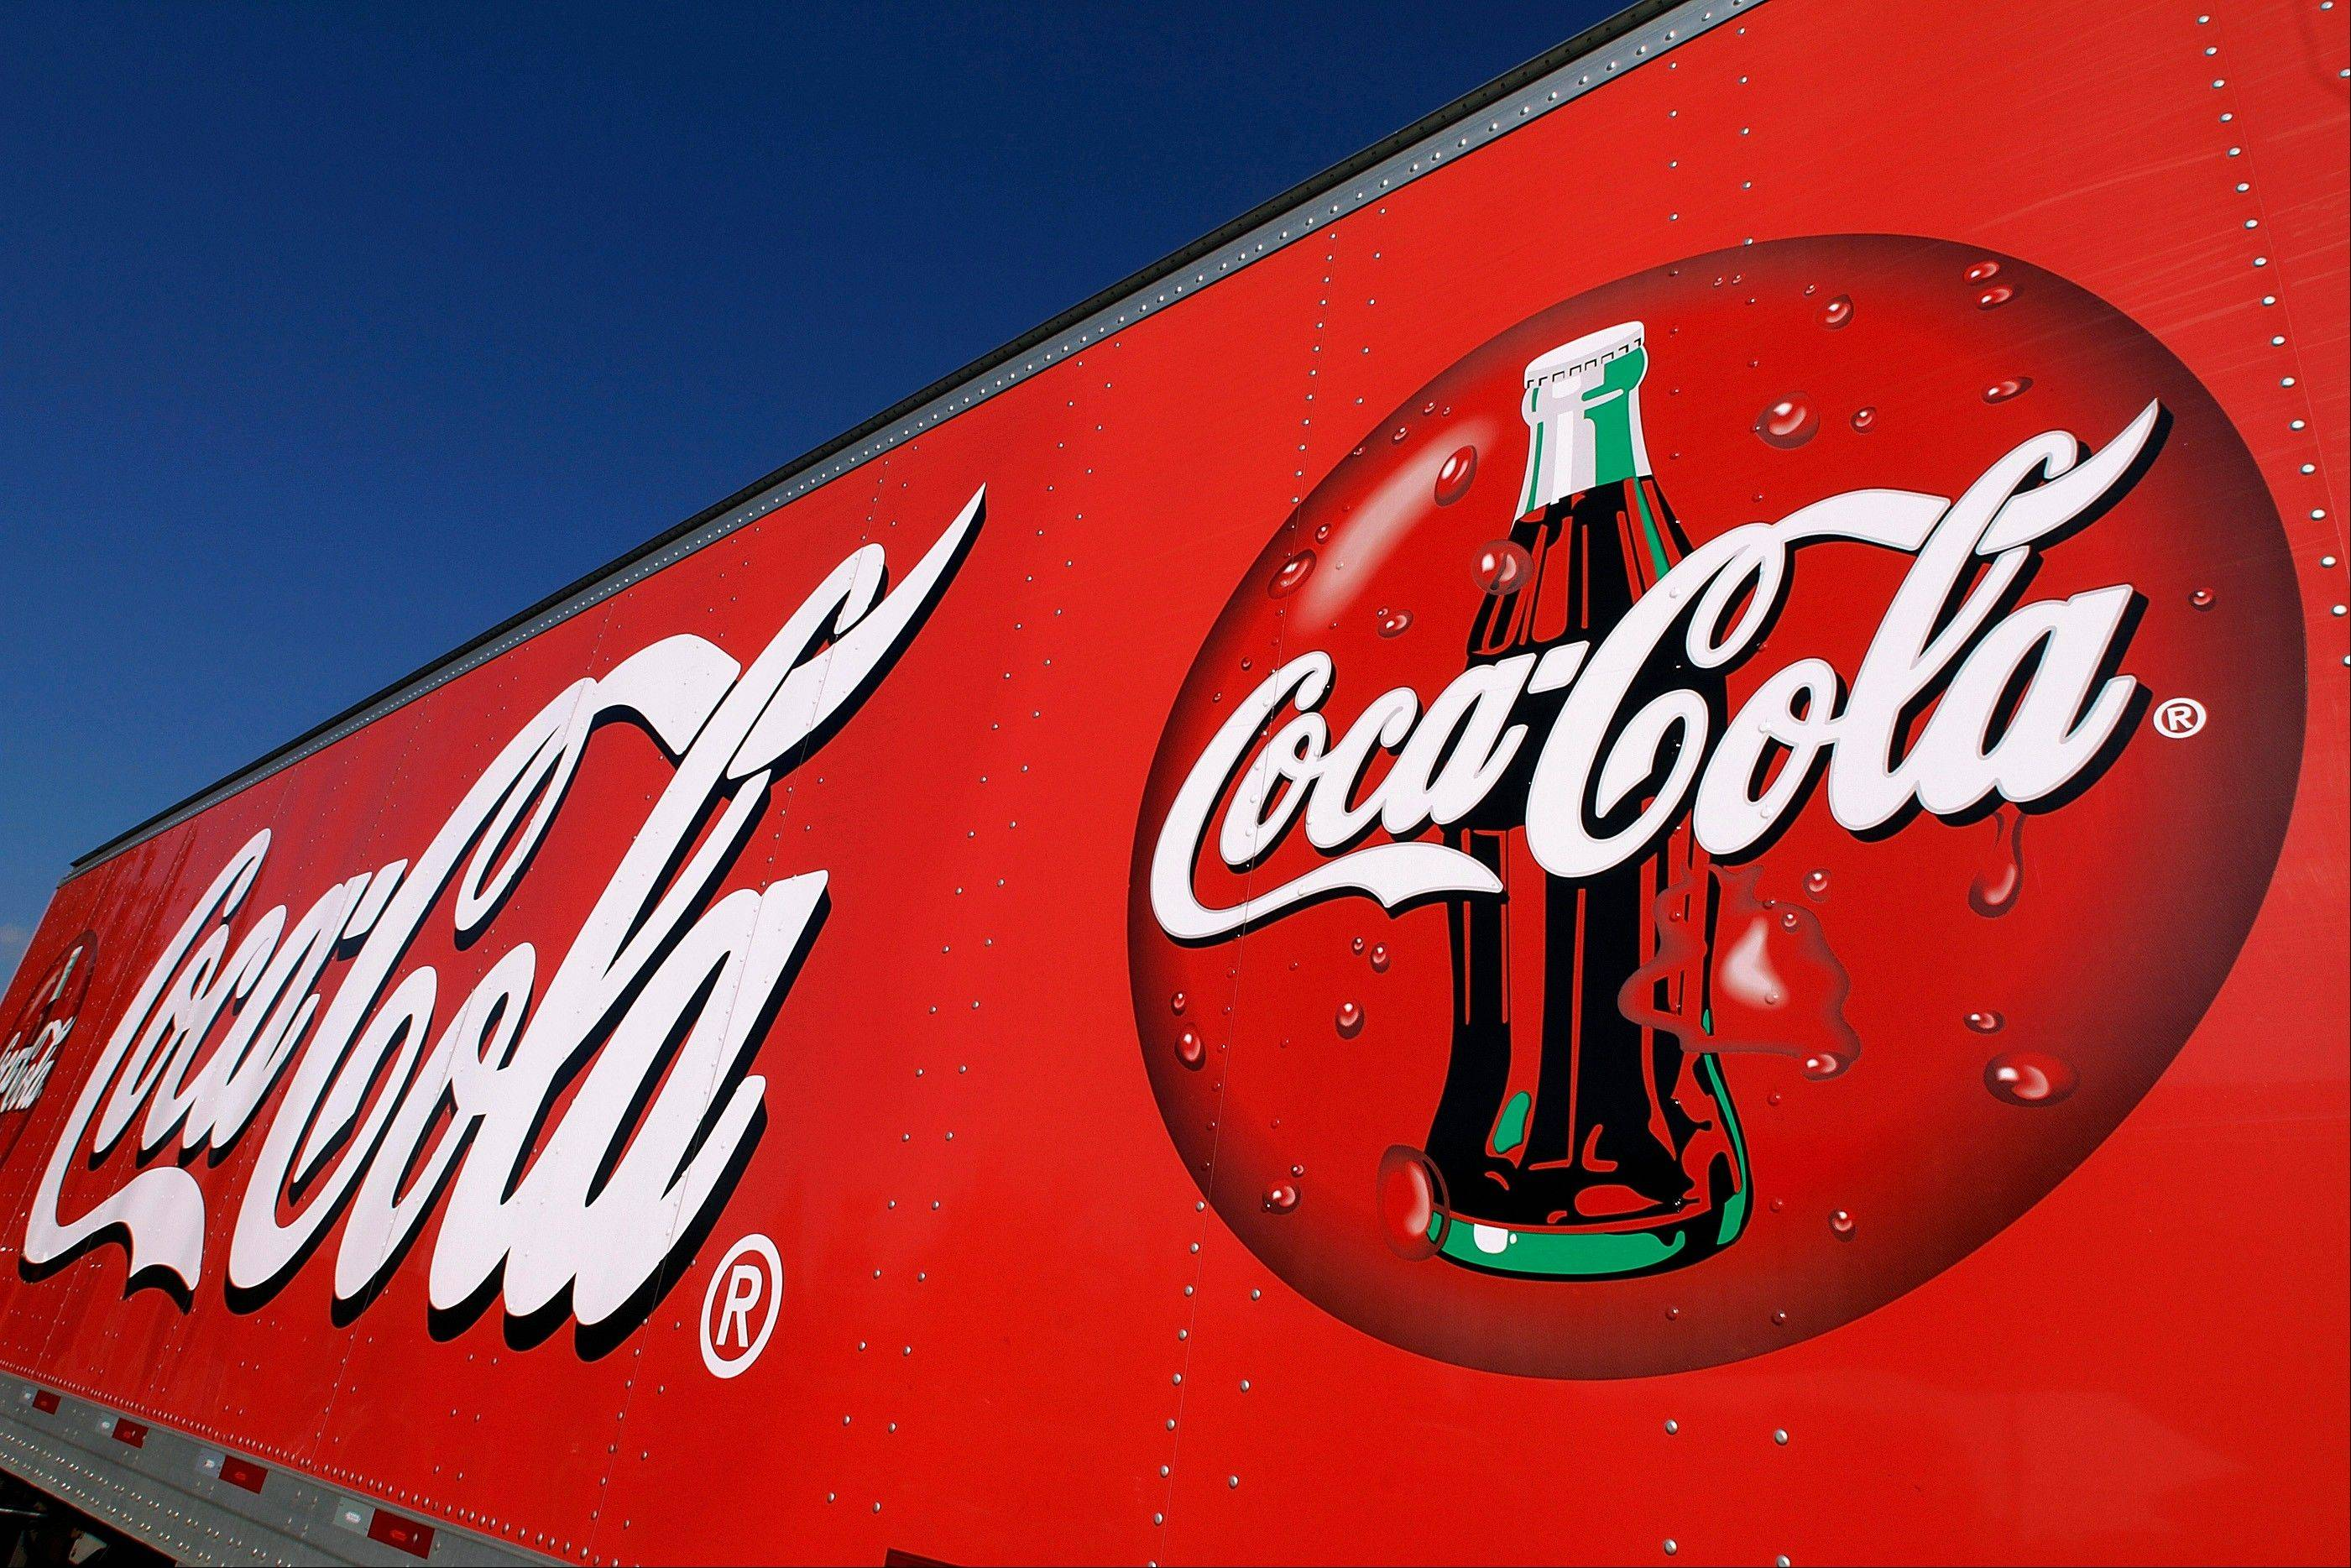 Last week, the New York Times reported that venerable Dow Jones Industrial Average component Coca-Cola Co. was awakening to the impact of climate change on its business.